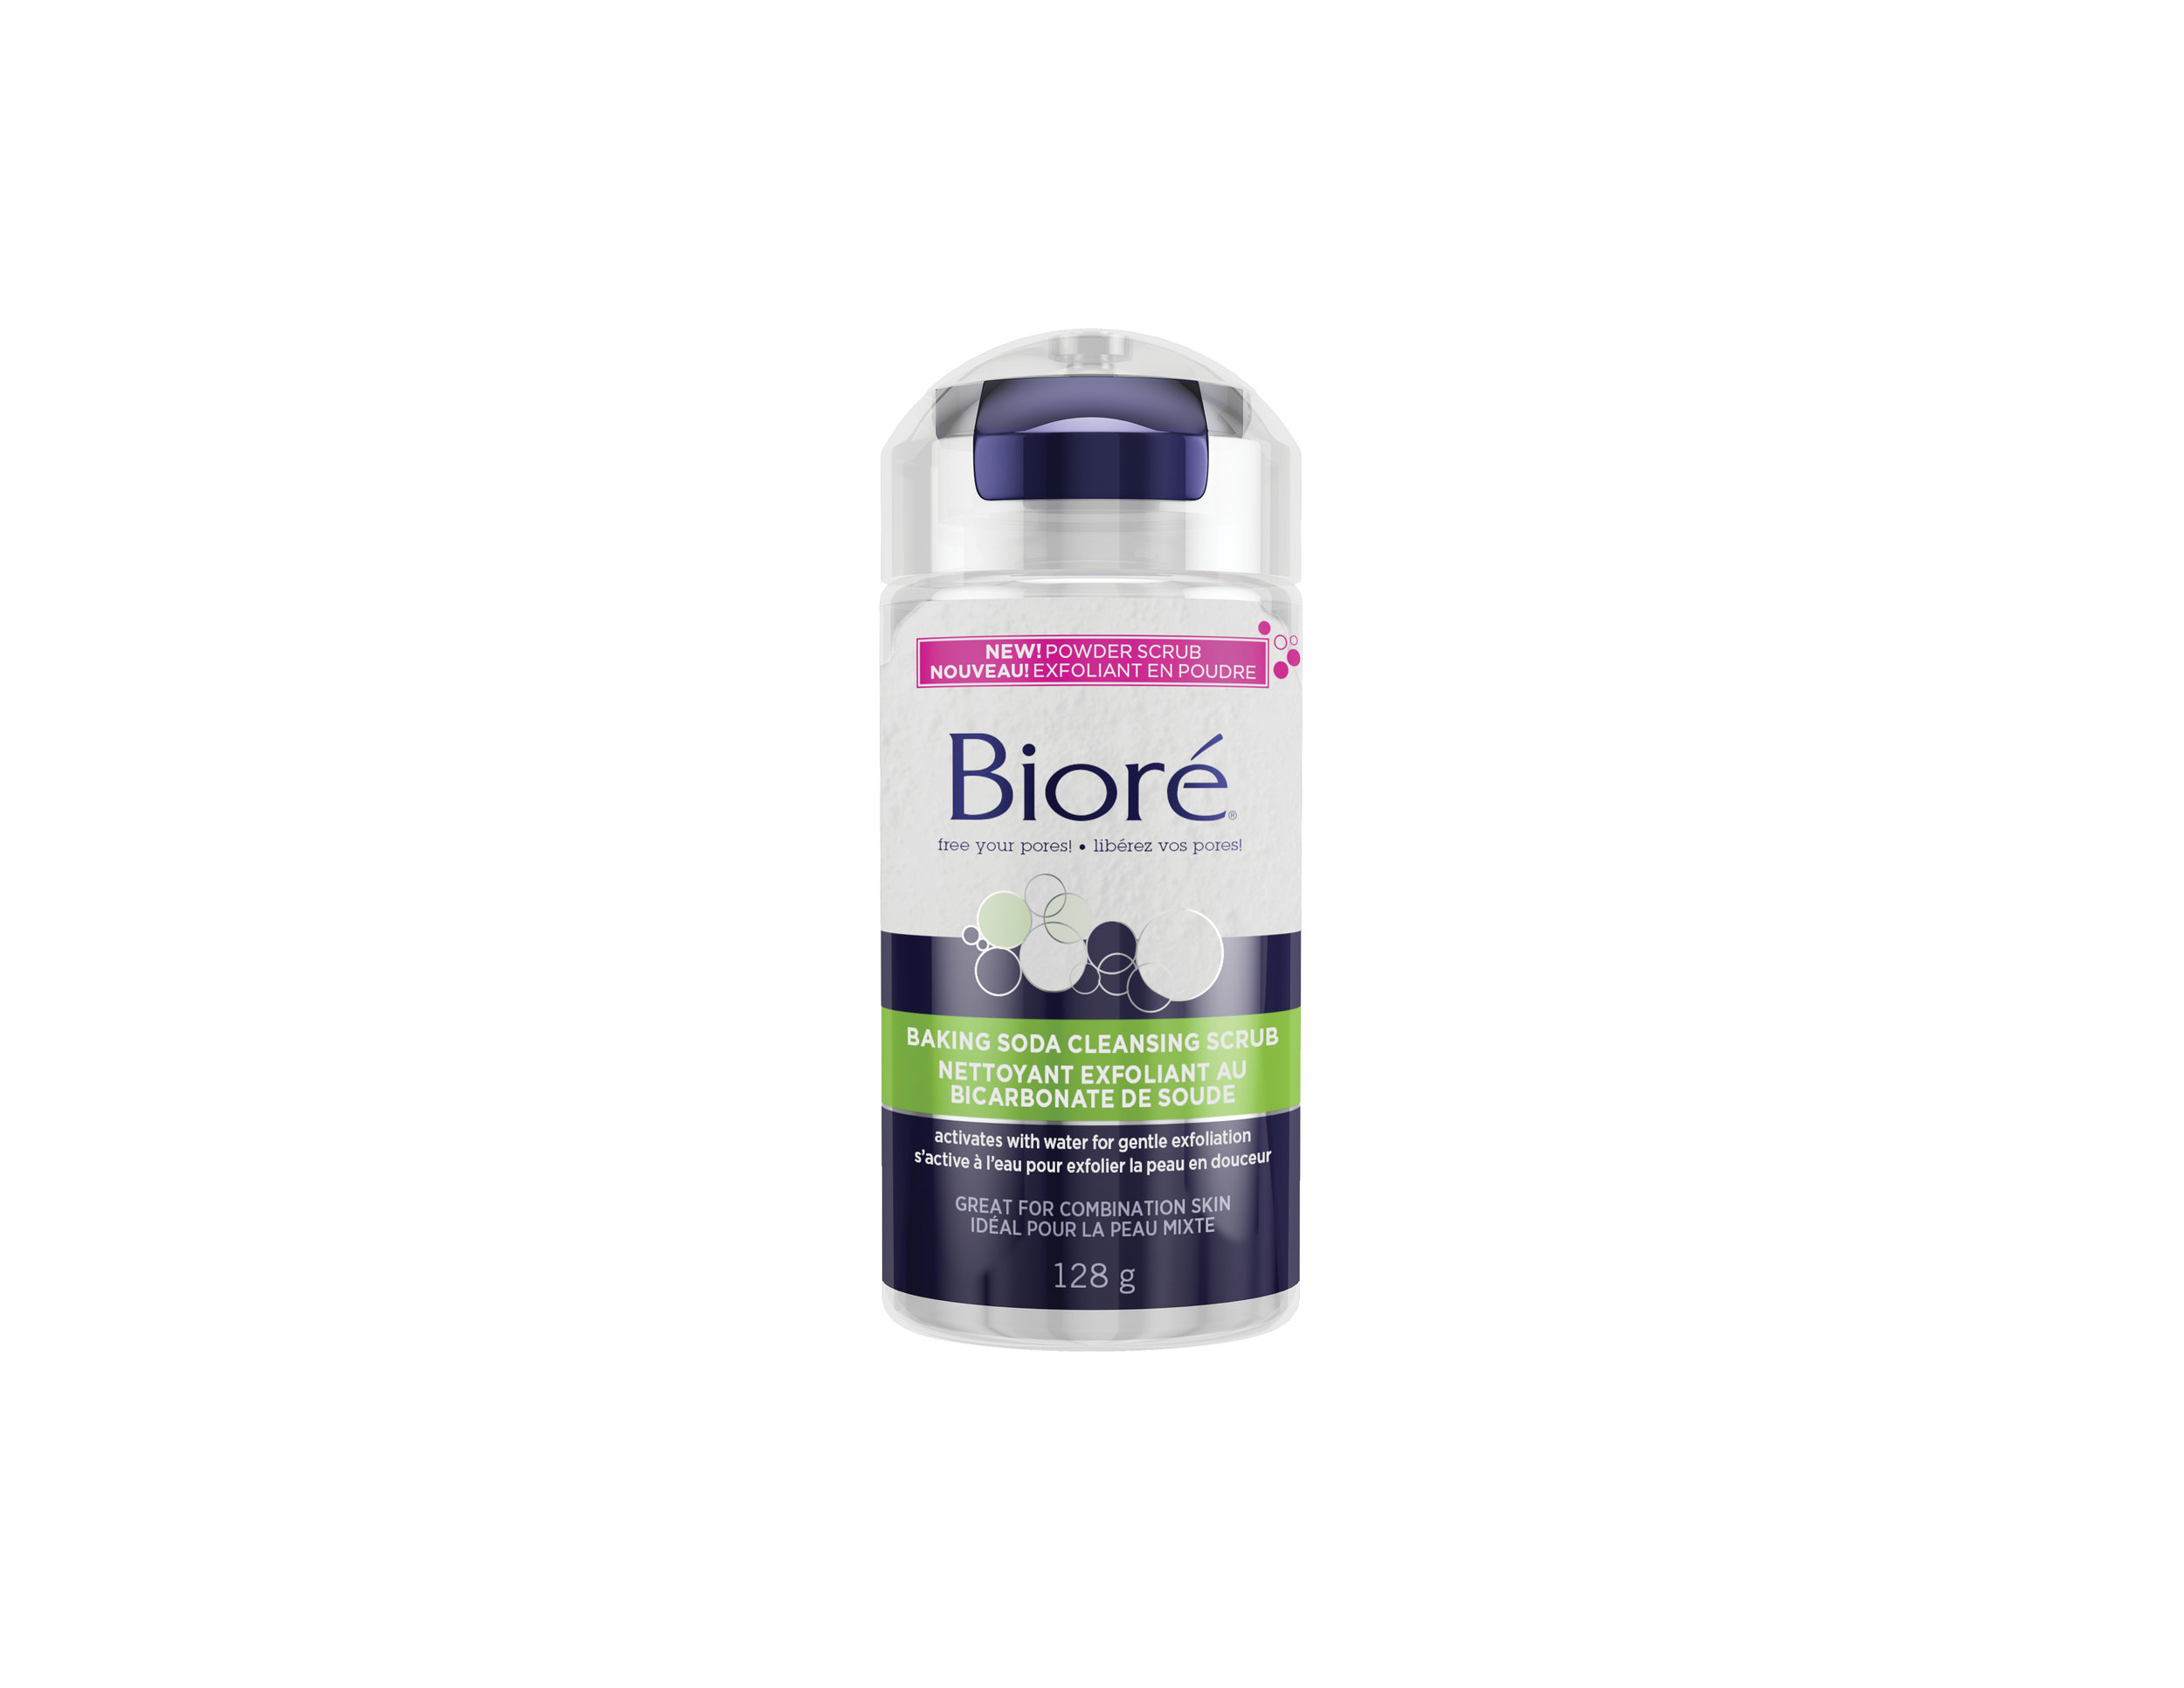 Biore Baking Soda Cleansing Scrub, $15.99. Available at select food, drug and mass retailers.